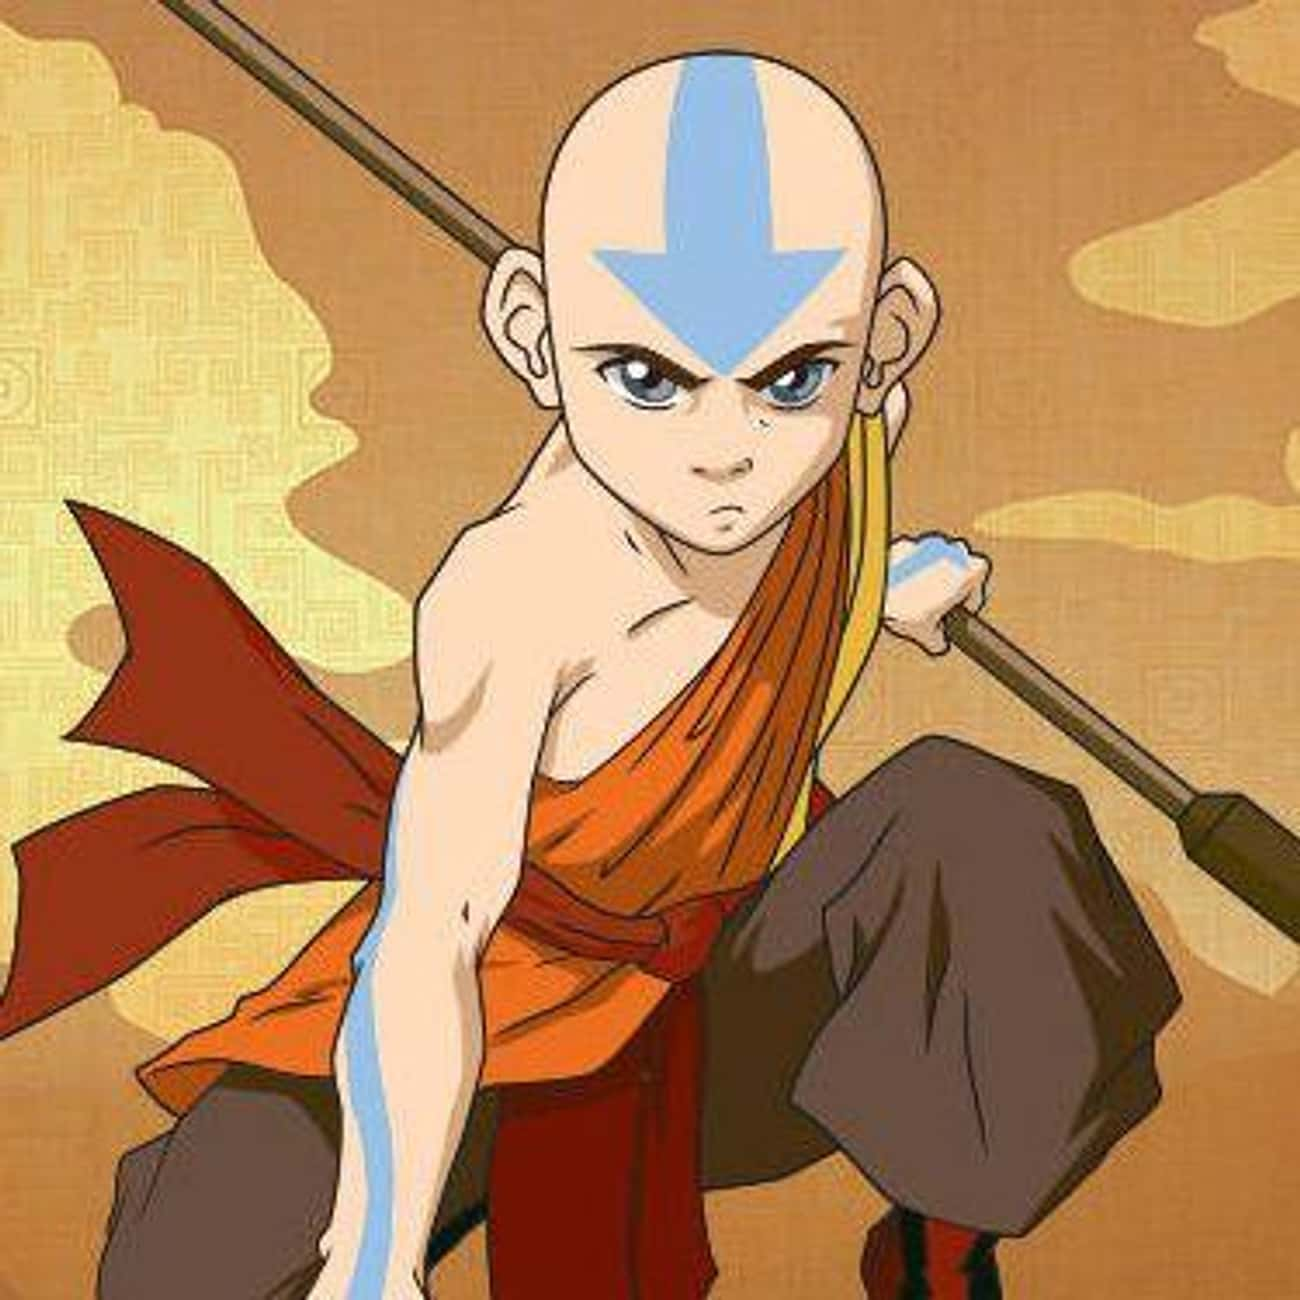 When We Hit Our Lowest Point is listed (or ranked) 1 on the list The Best Aang Quotes From Avatar: The Last Airbender